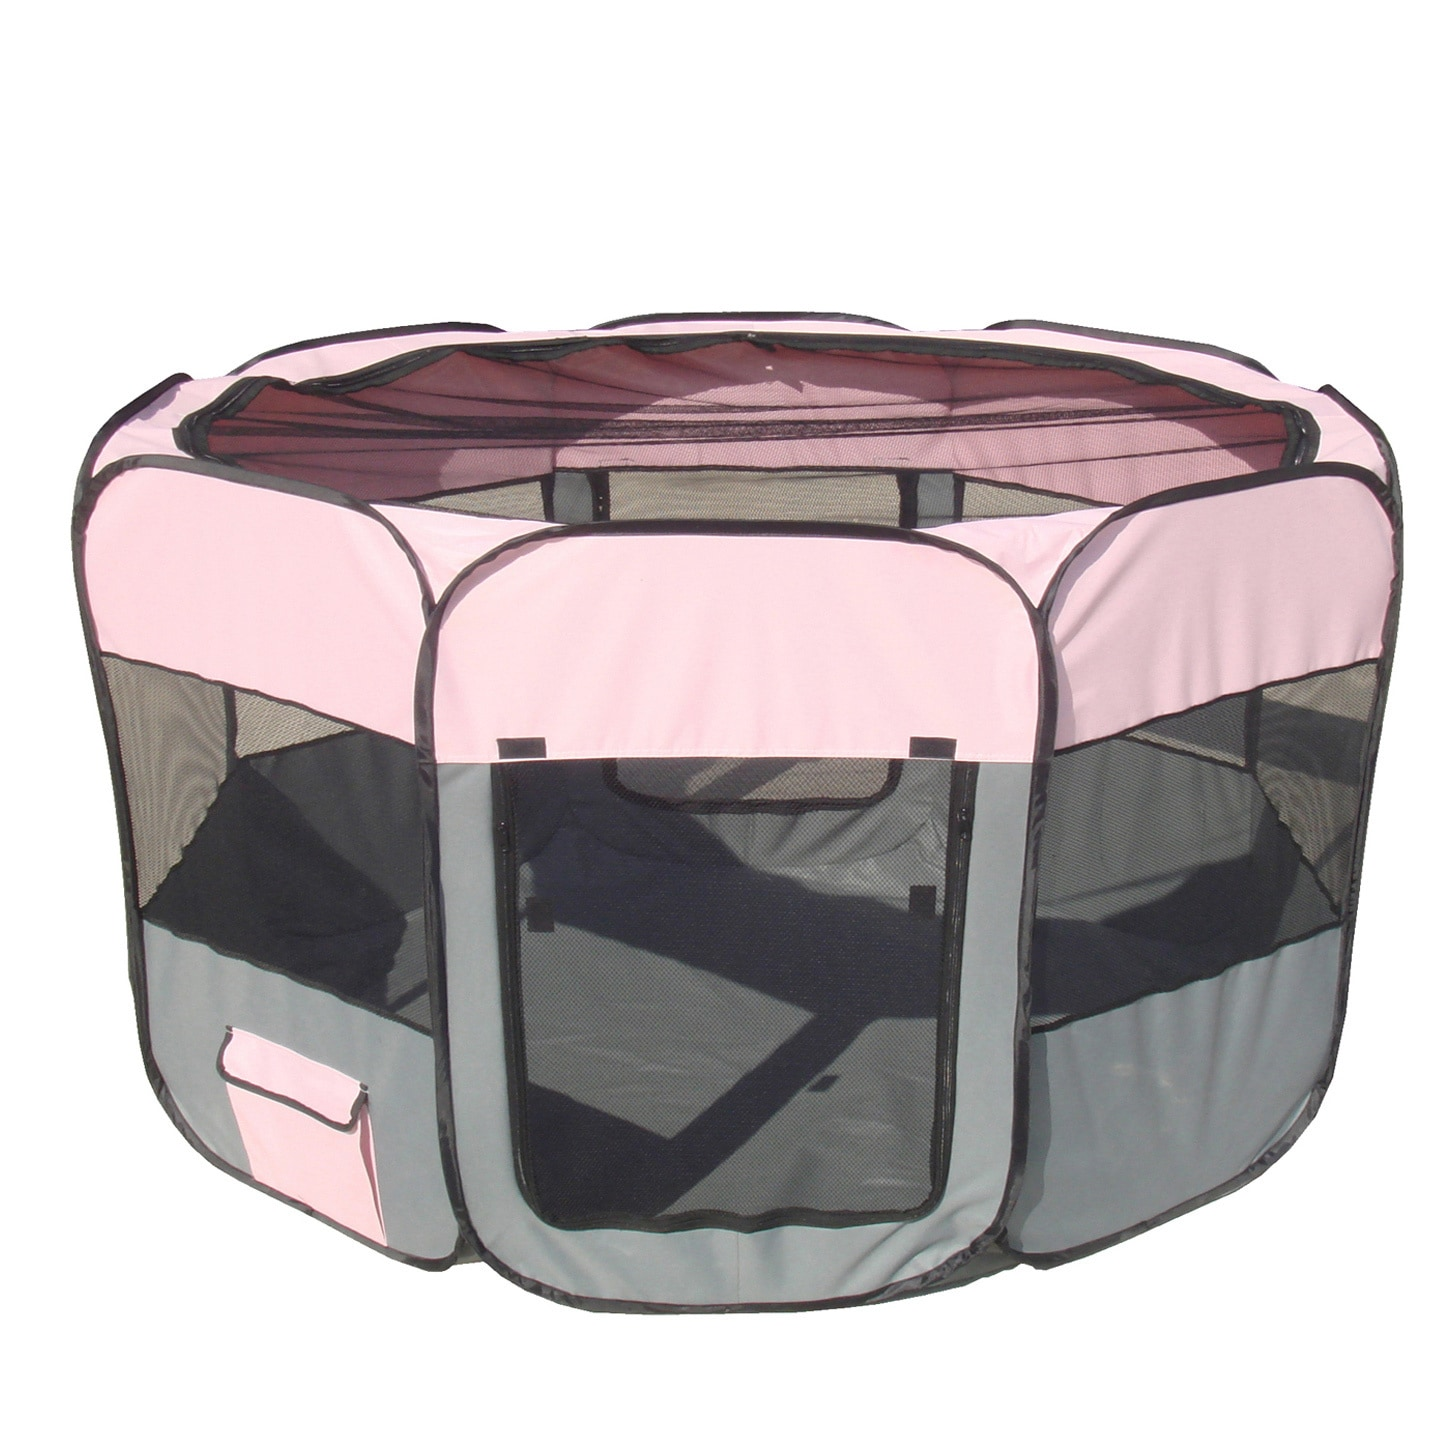 Petlife Collapsible Travel Pet Play Pen (Pink/Grey - Large)